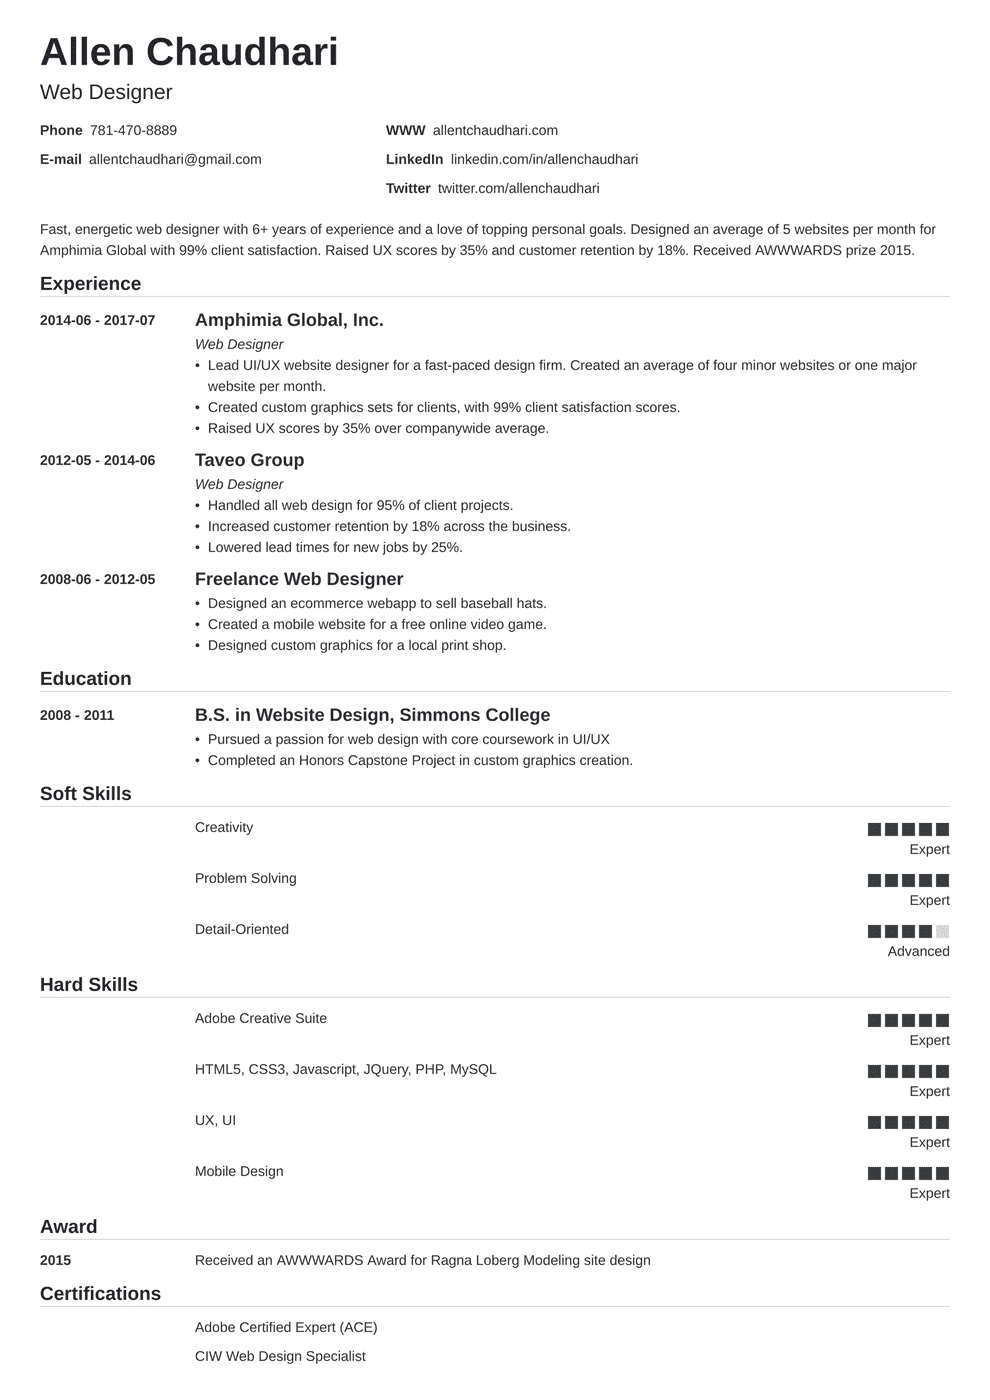 Web Designer Resume: Sample and Complete Guide [+20 Examples]